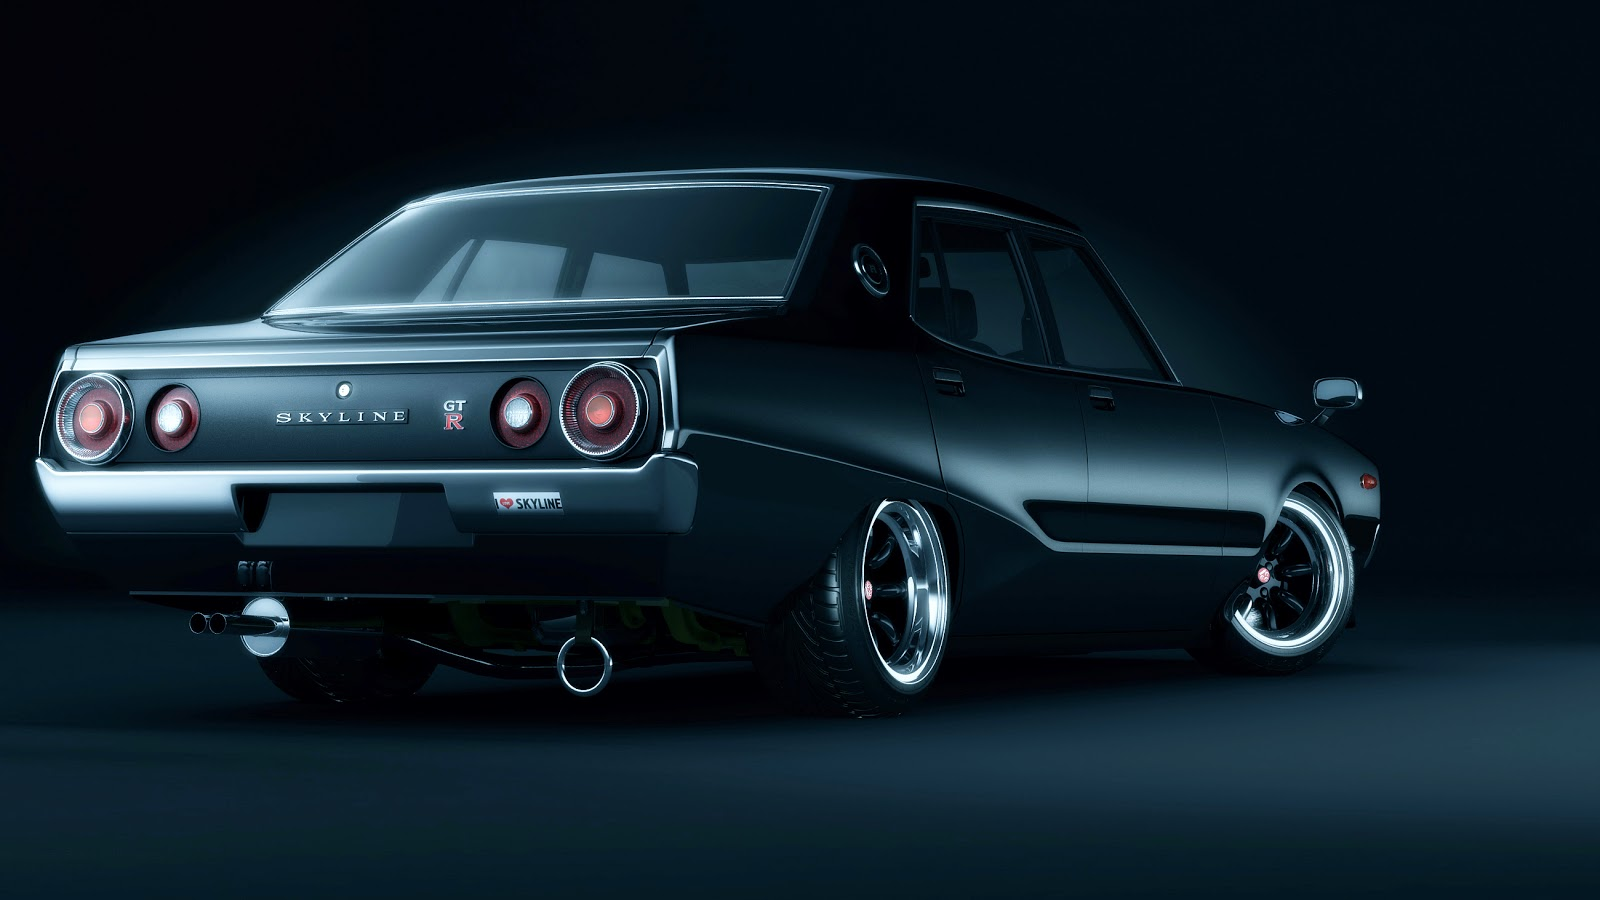 1974 Nissan Skyline Cg110 on old cars 30s 40s 50s and 60s